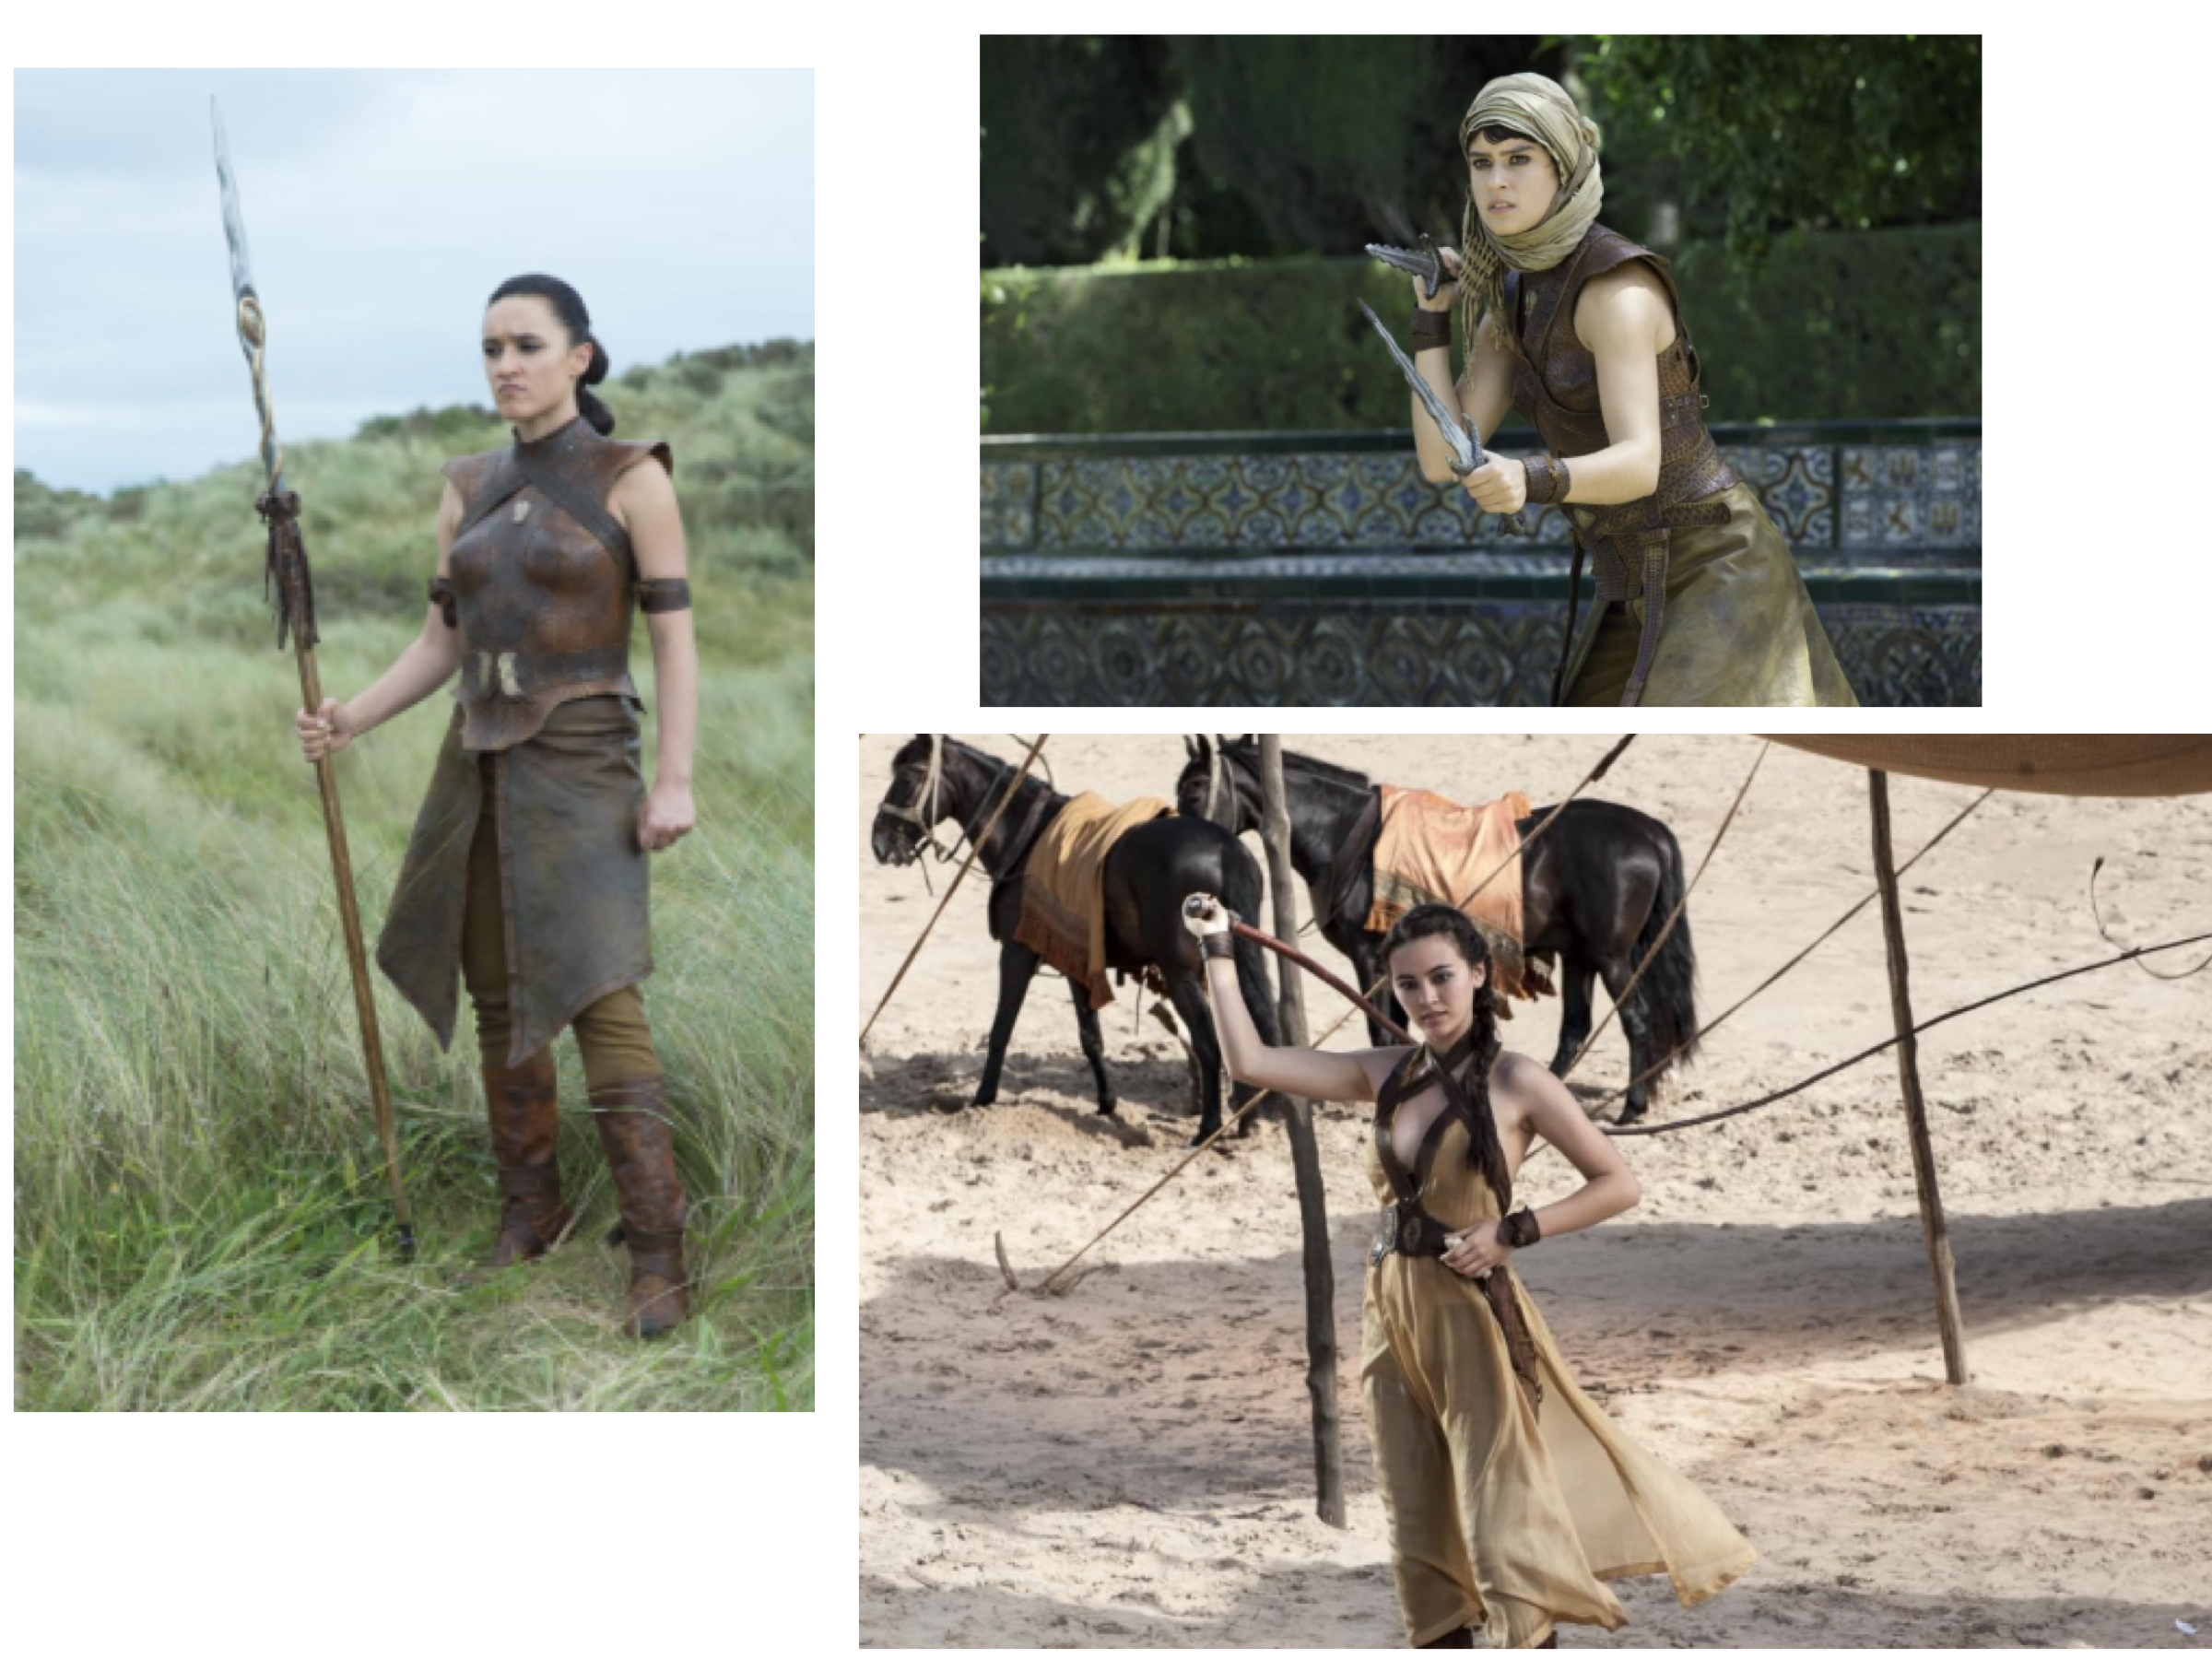 Obara Sand, played by Keisha Castle-Hughes  Nym Sand, played by Jessica Henwick Rosabell Laurenti Sellers as Tyene Sand I REALLY HOPE THAT THESE GIRLS EXCELL IN THEIR ROLES AS NOTHING UPSETS ME MORE THAN SHIT ACTORS LANDING DREAM ROLES! and to play a Sand - dream role!